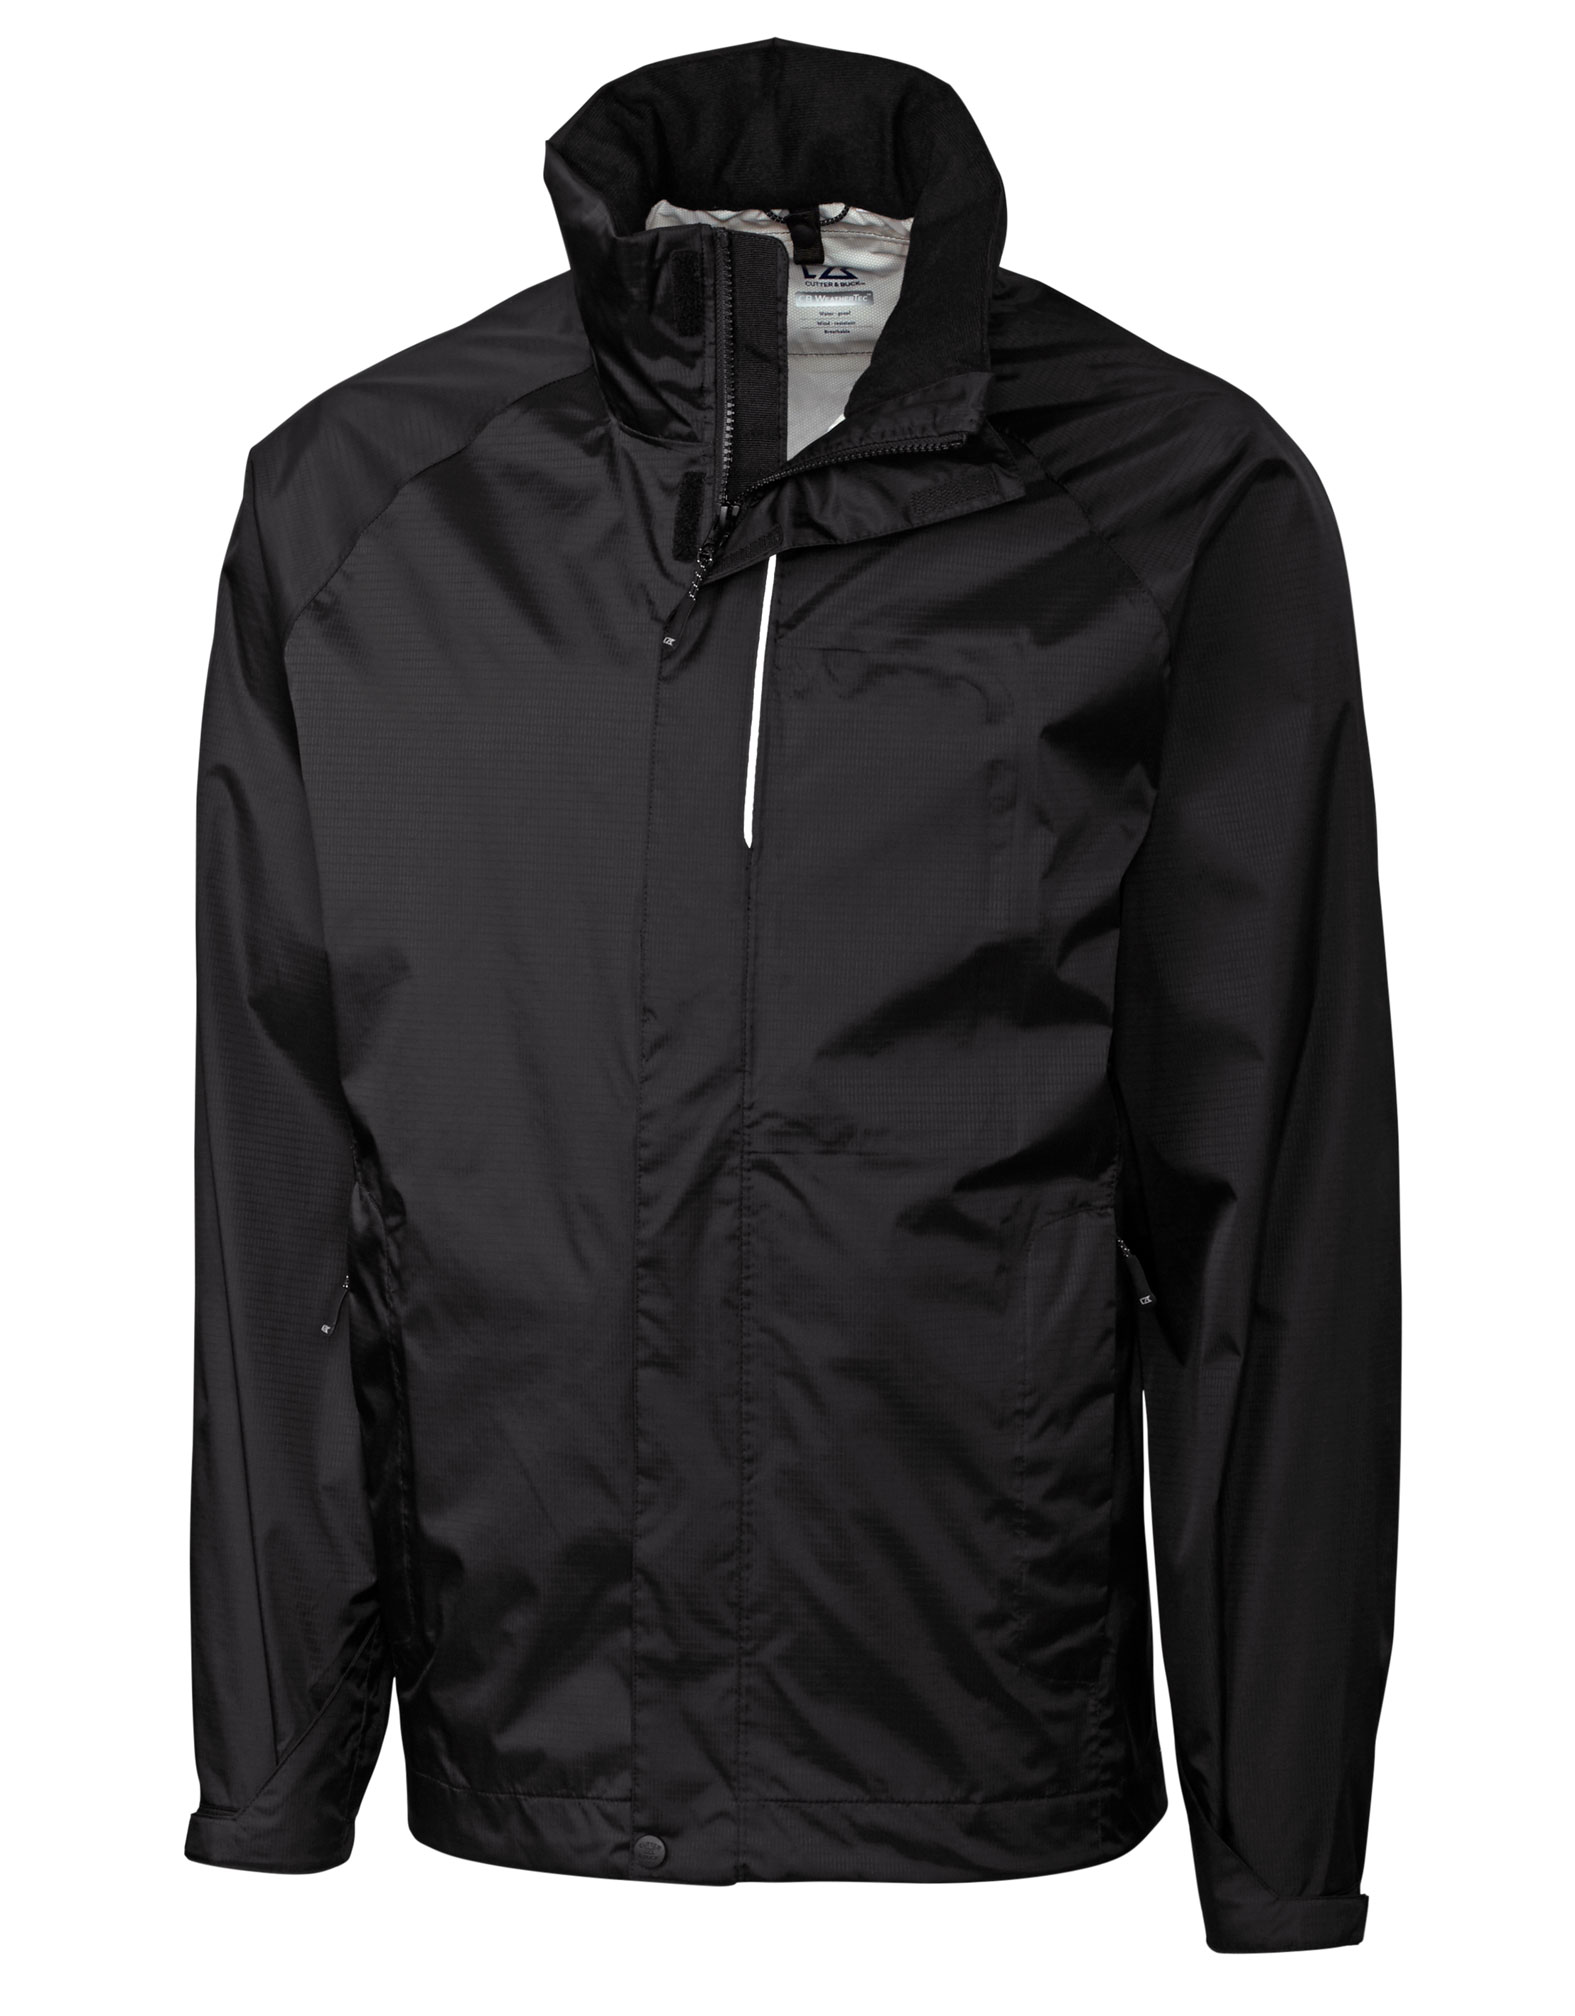 Mens Big and Tall Trailhead Jacket